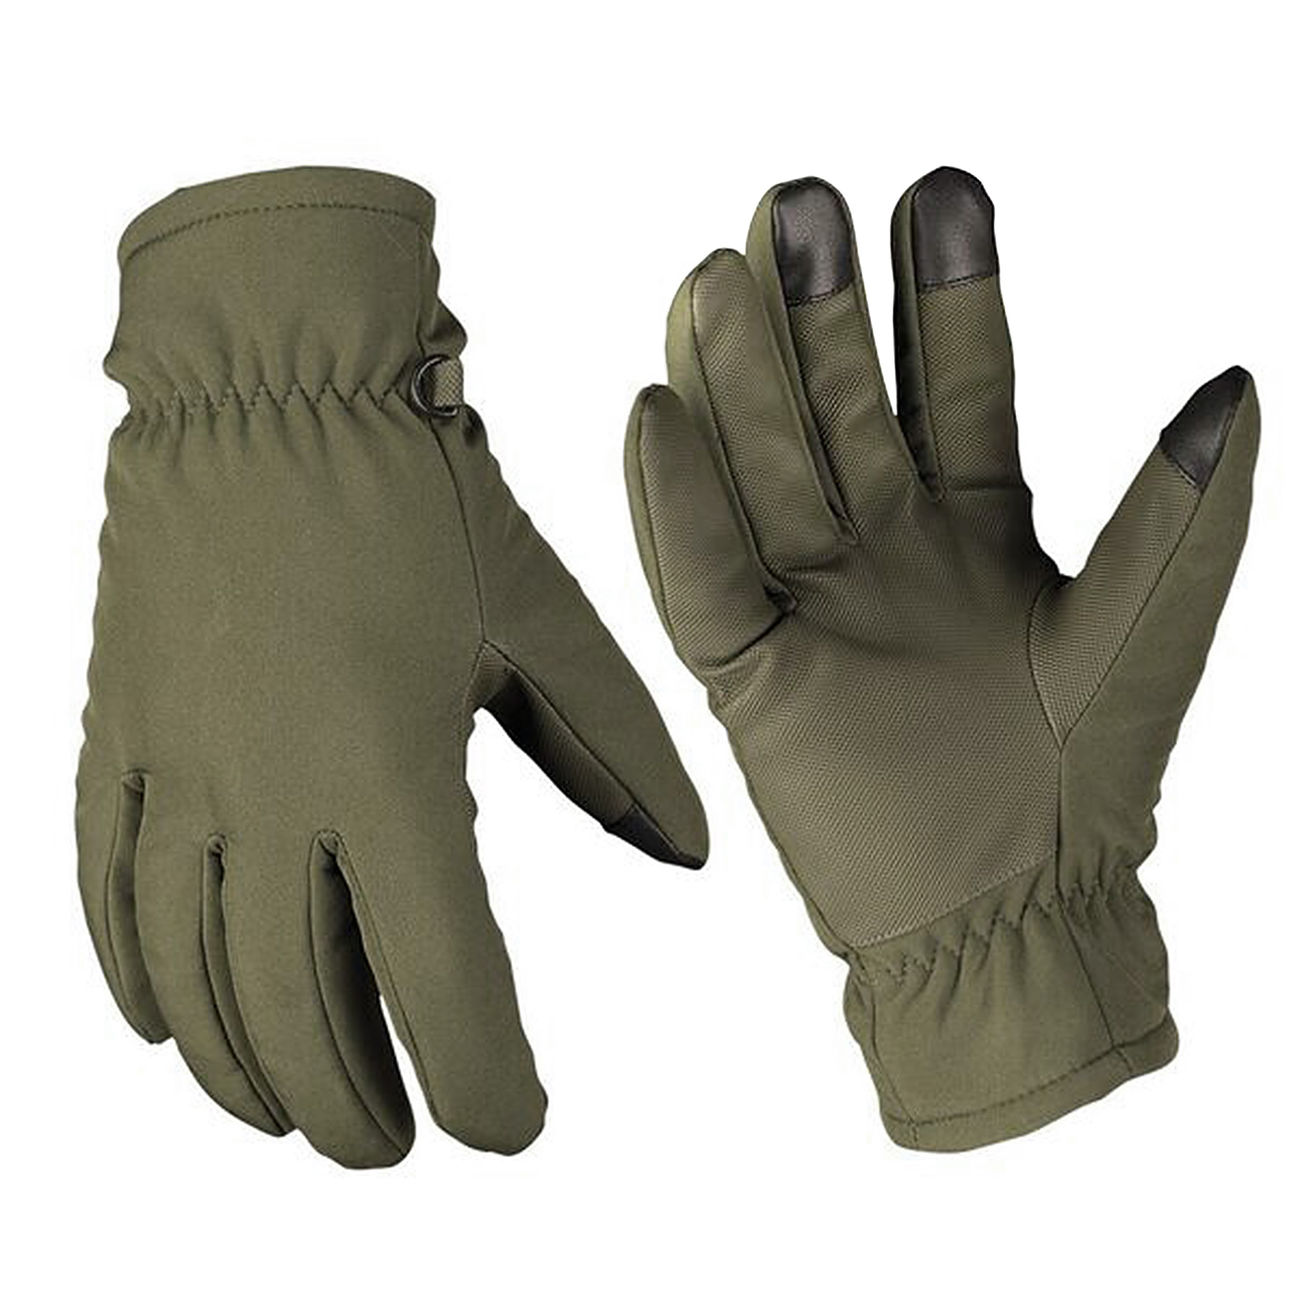 Mil-Tec Softshell Handschuhe Thinsulate oliv 0